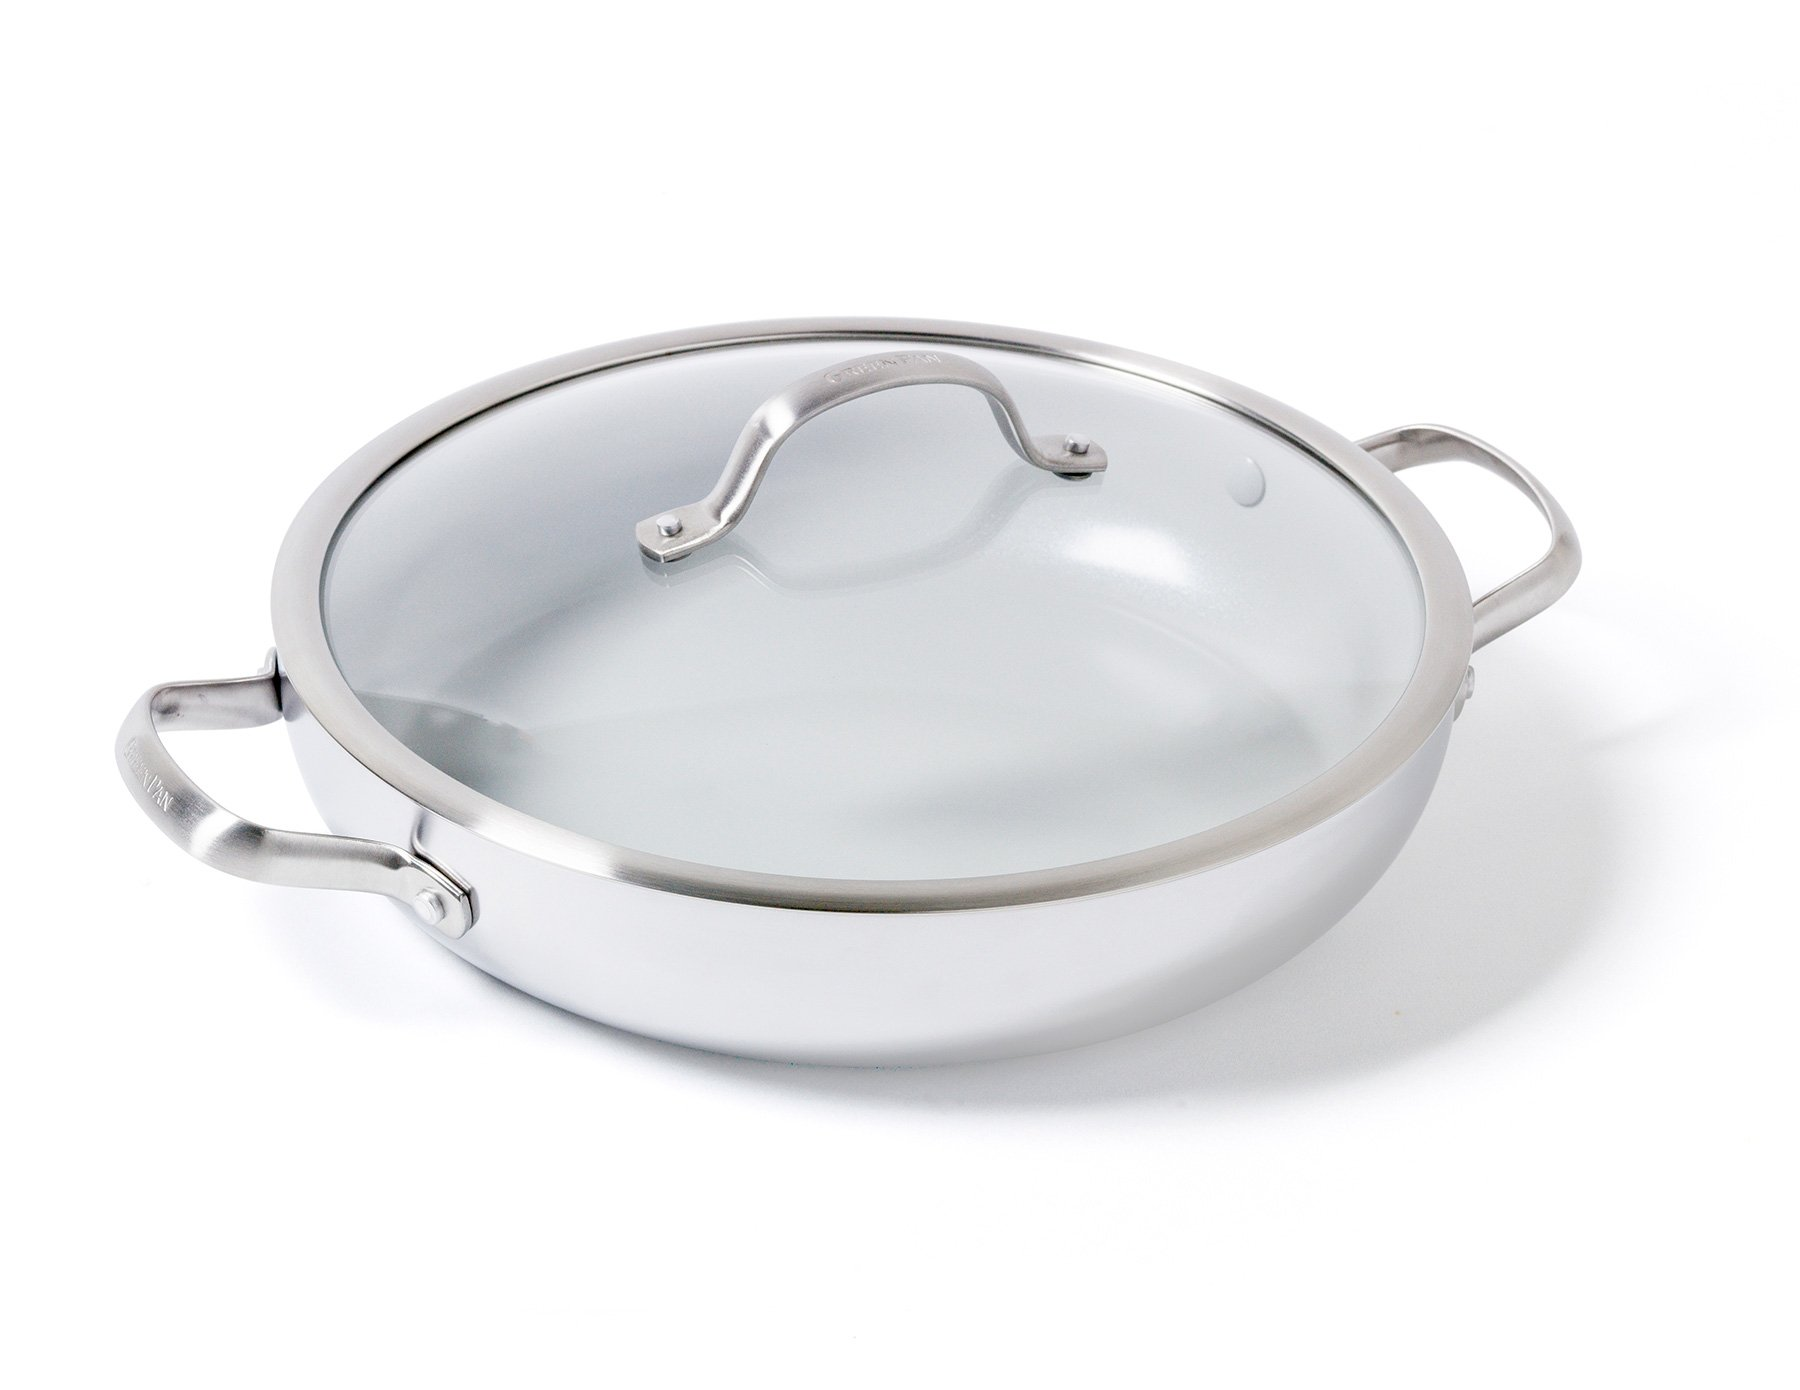 GreenPan Venice Pro 12'' Ceramic Non-Stick Covered Everday Pan with 2 Side Handles